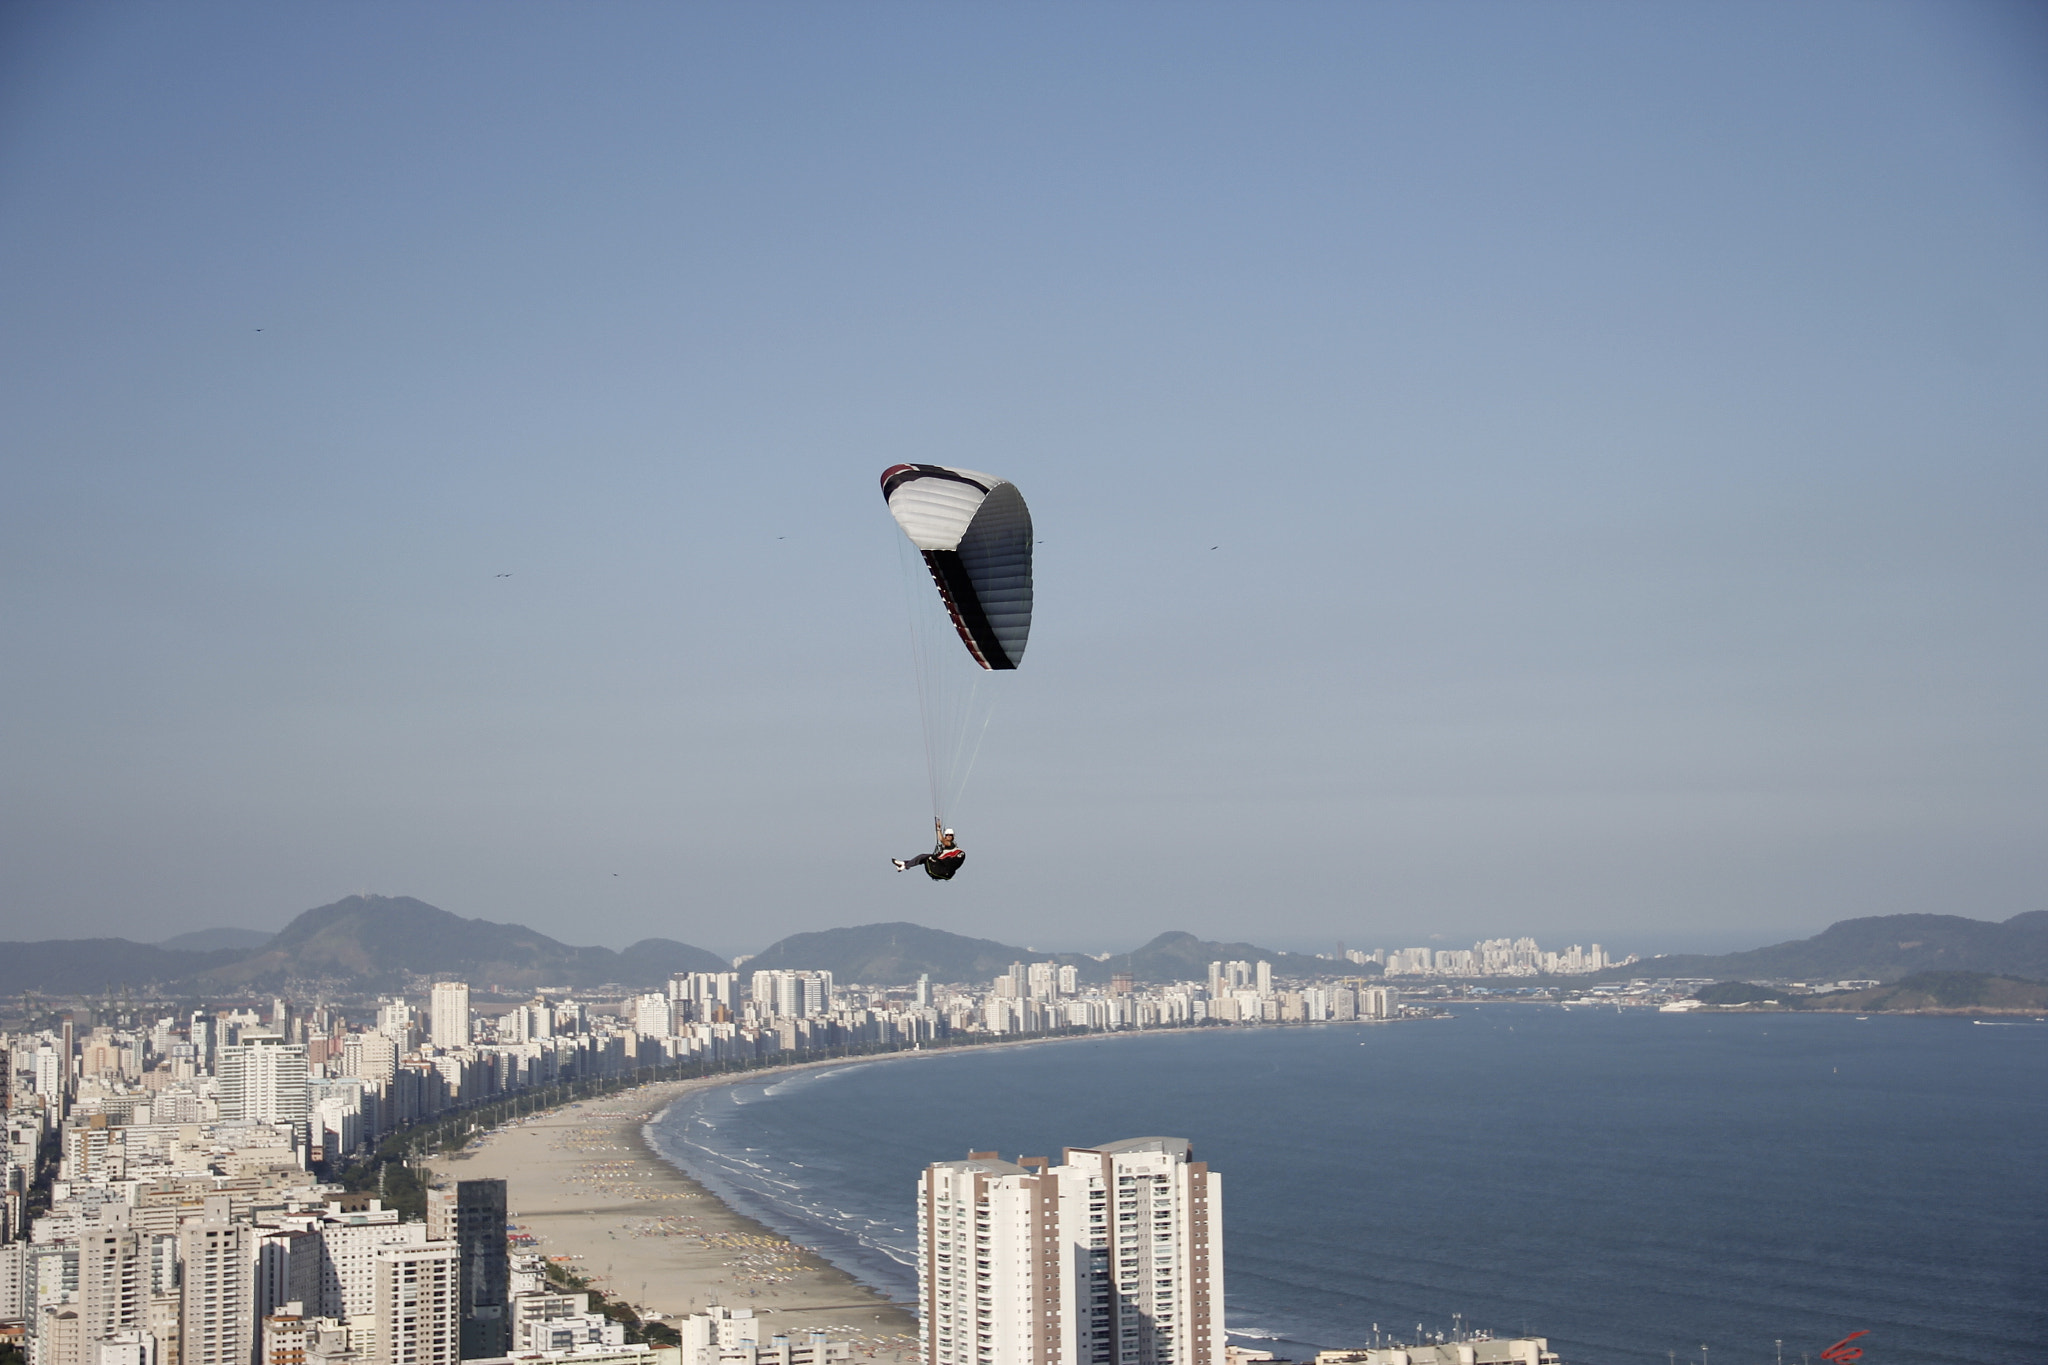 Photograph Paraglider by Daniel Antunes on 500px